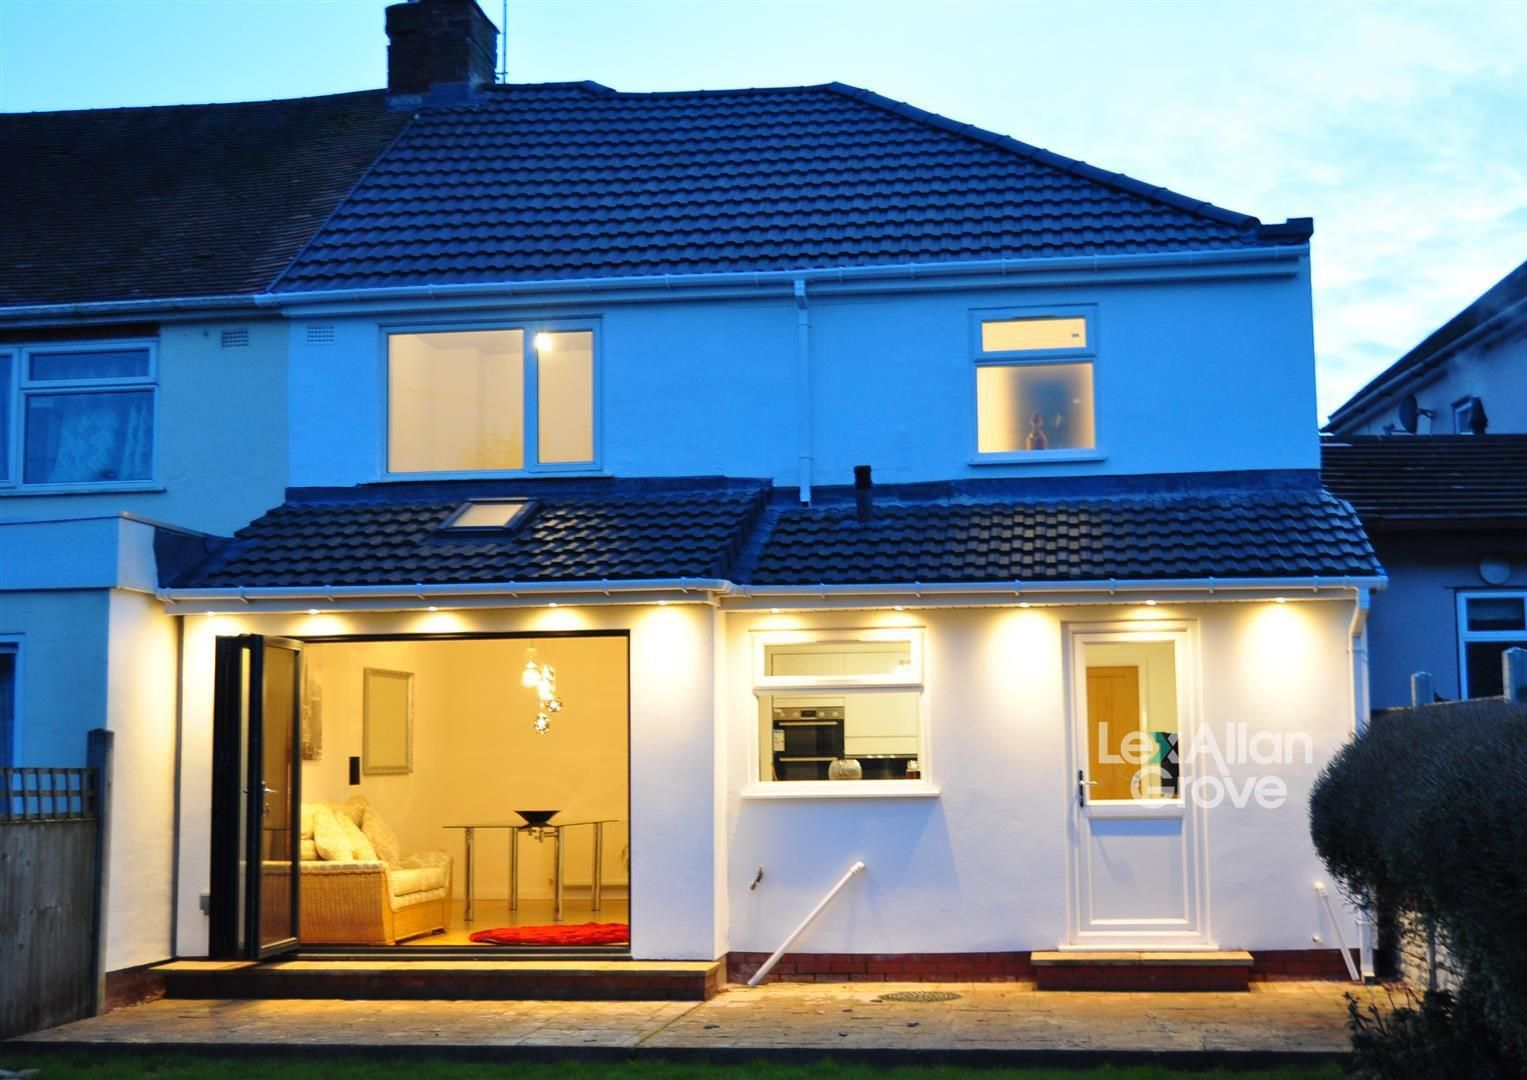 3 bed house for sale, B62